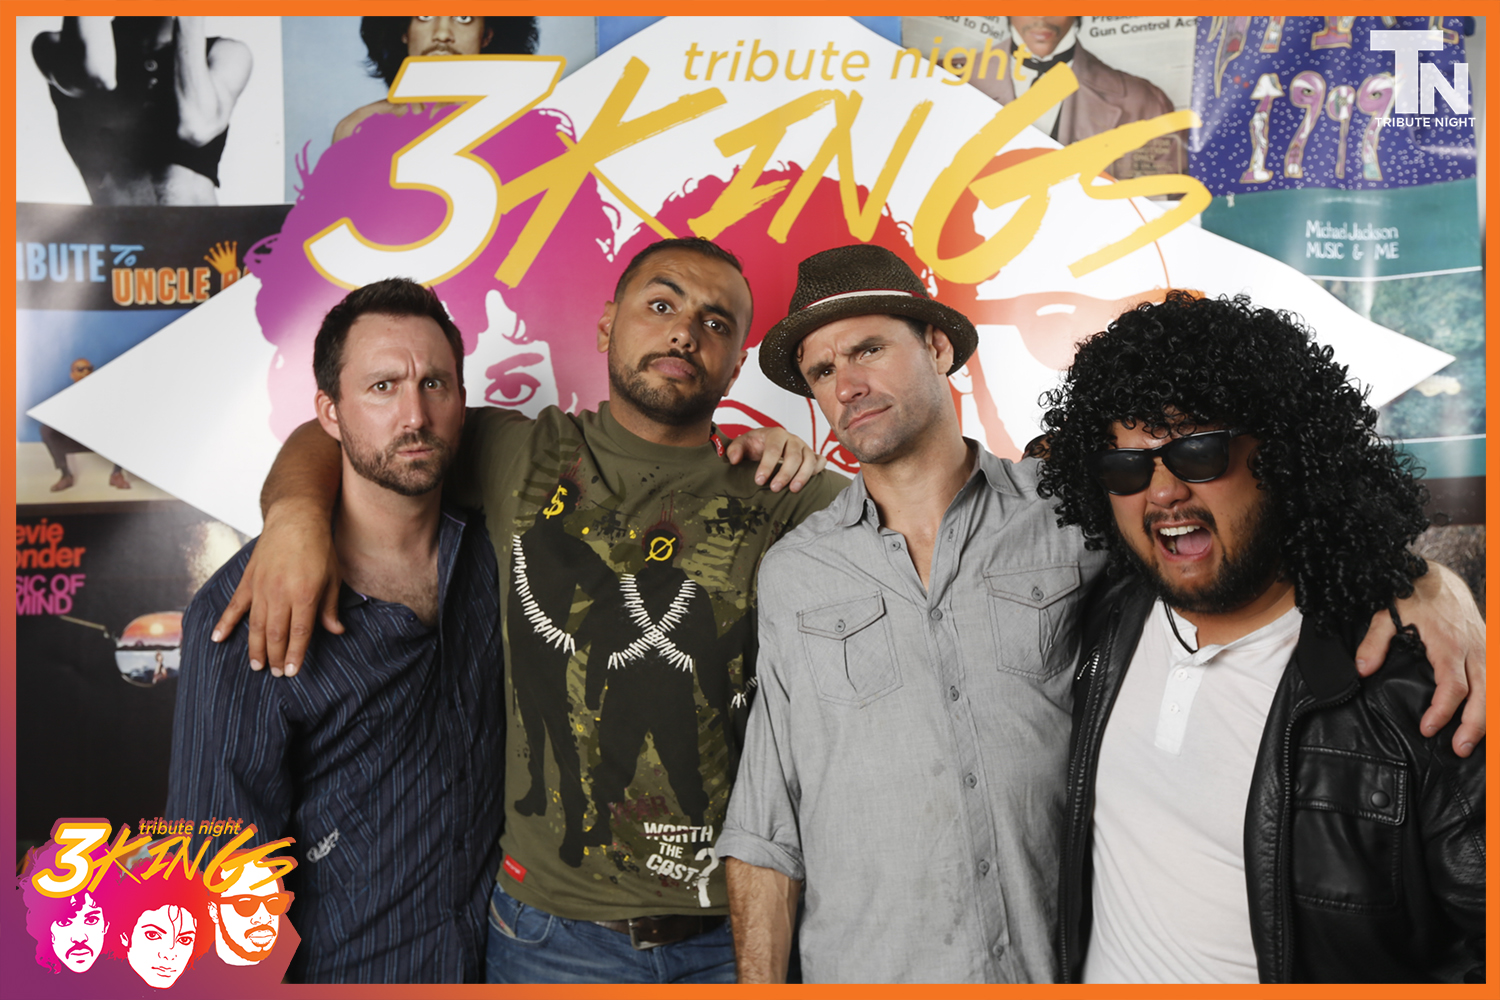 3kings Tribute Night Logo048.jpg